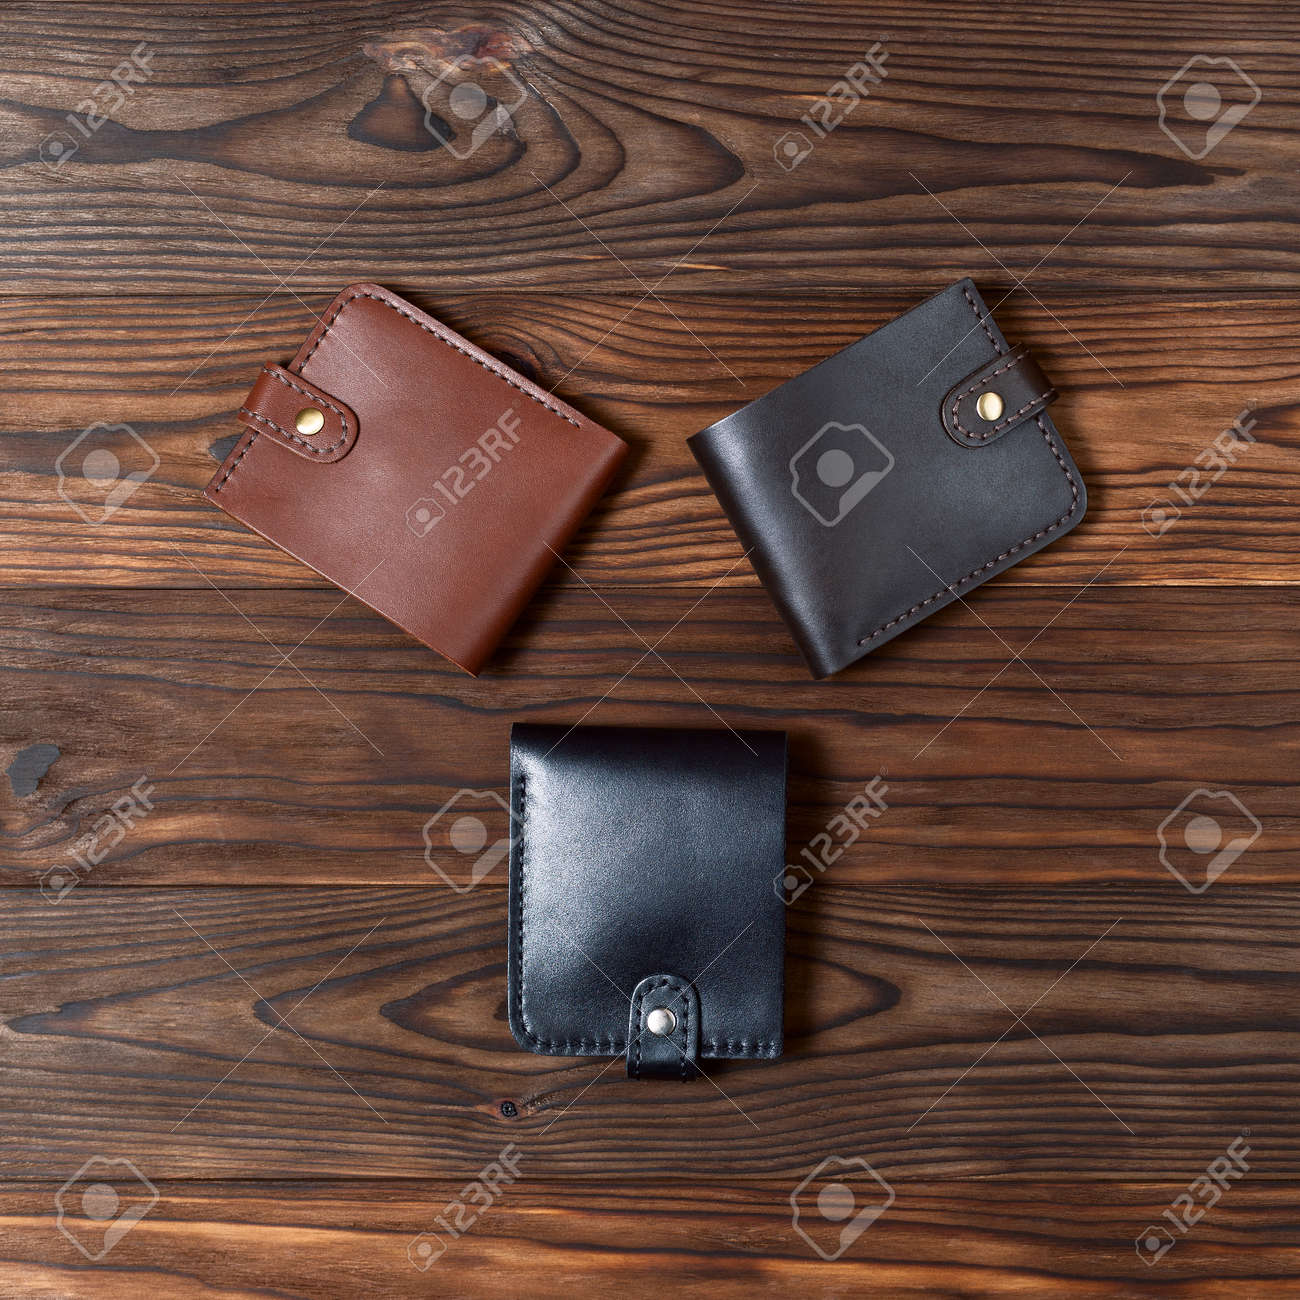 Three handmade leather gloss wallets on wooden textured background